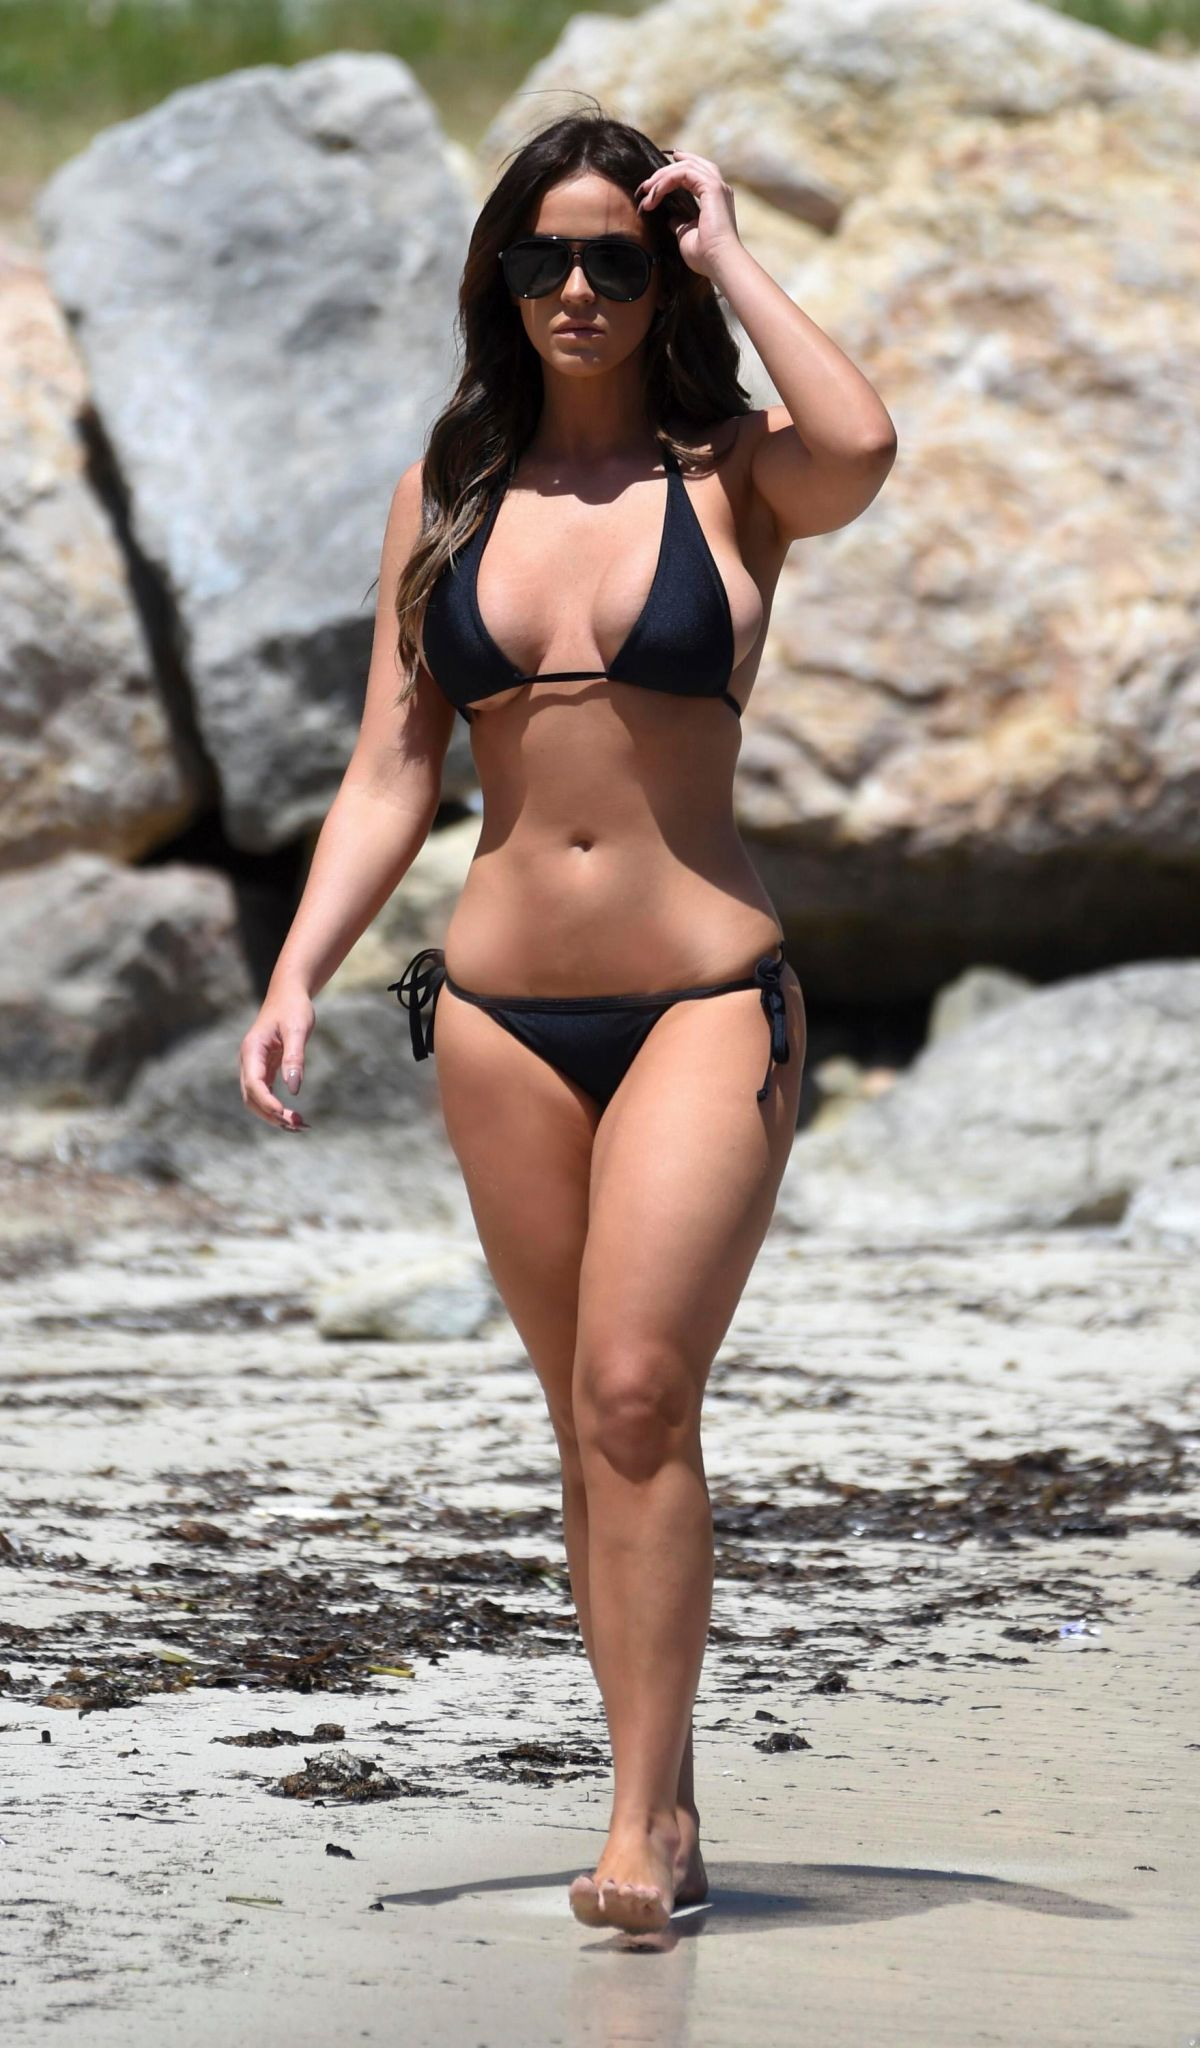 vicky pattison - photo #13